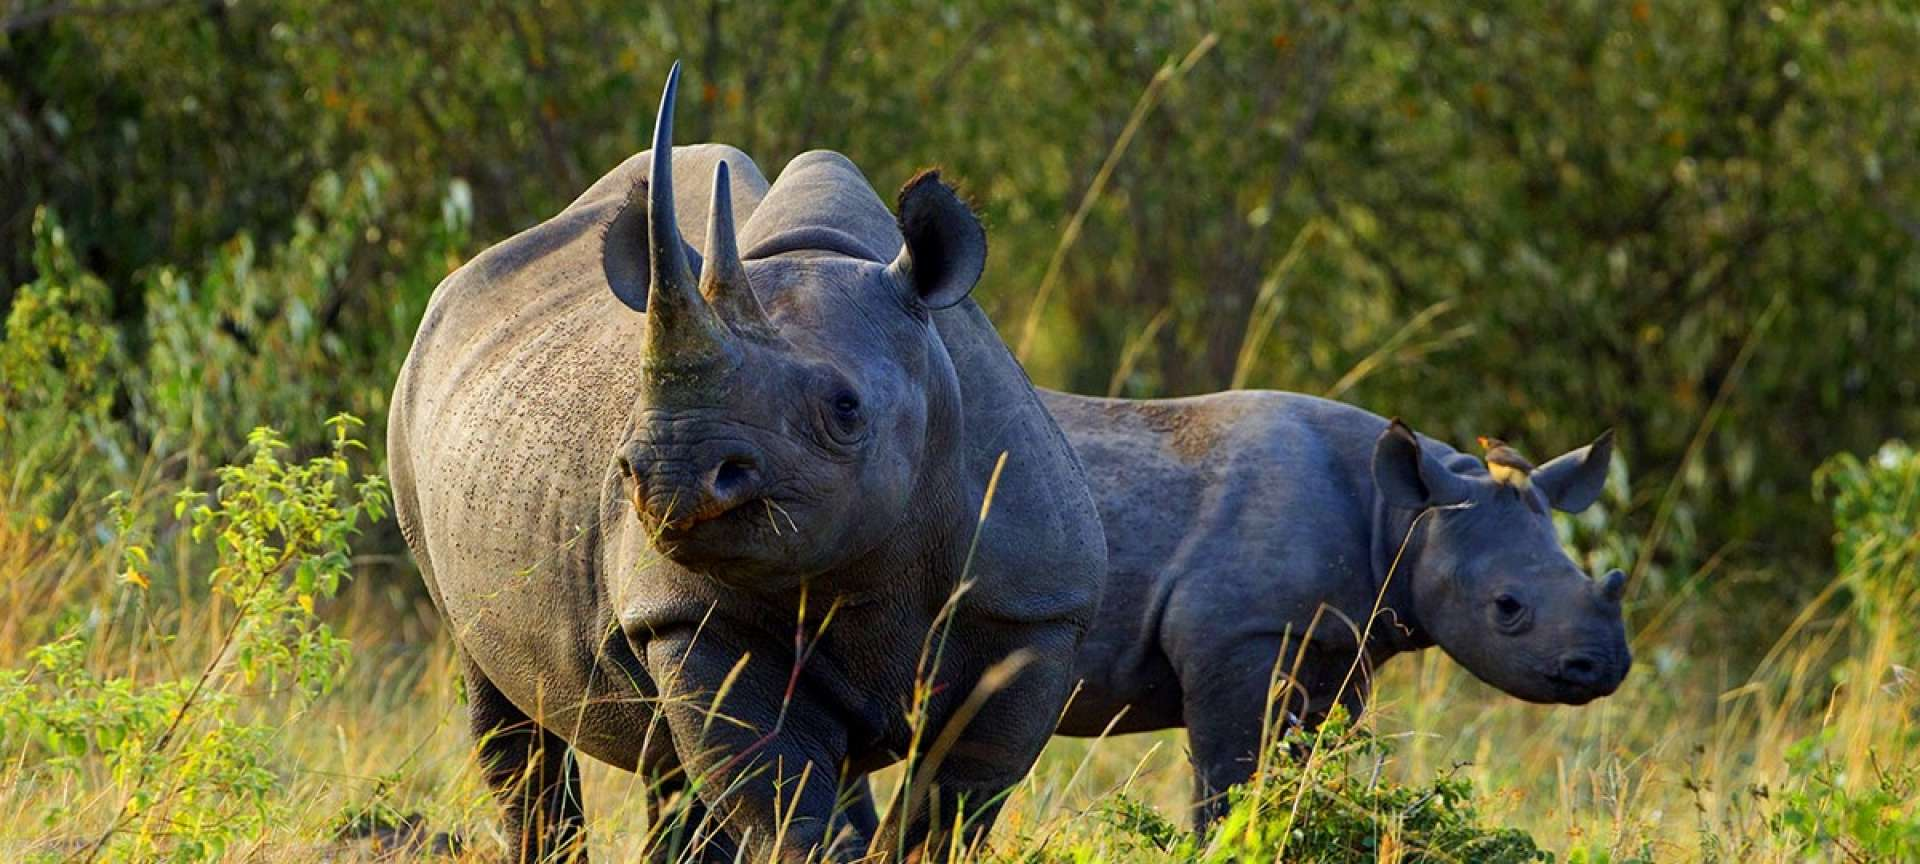 The Black rhino is critically endangered